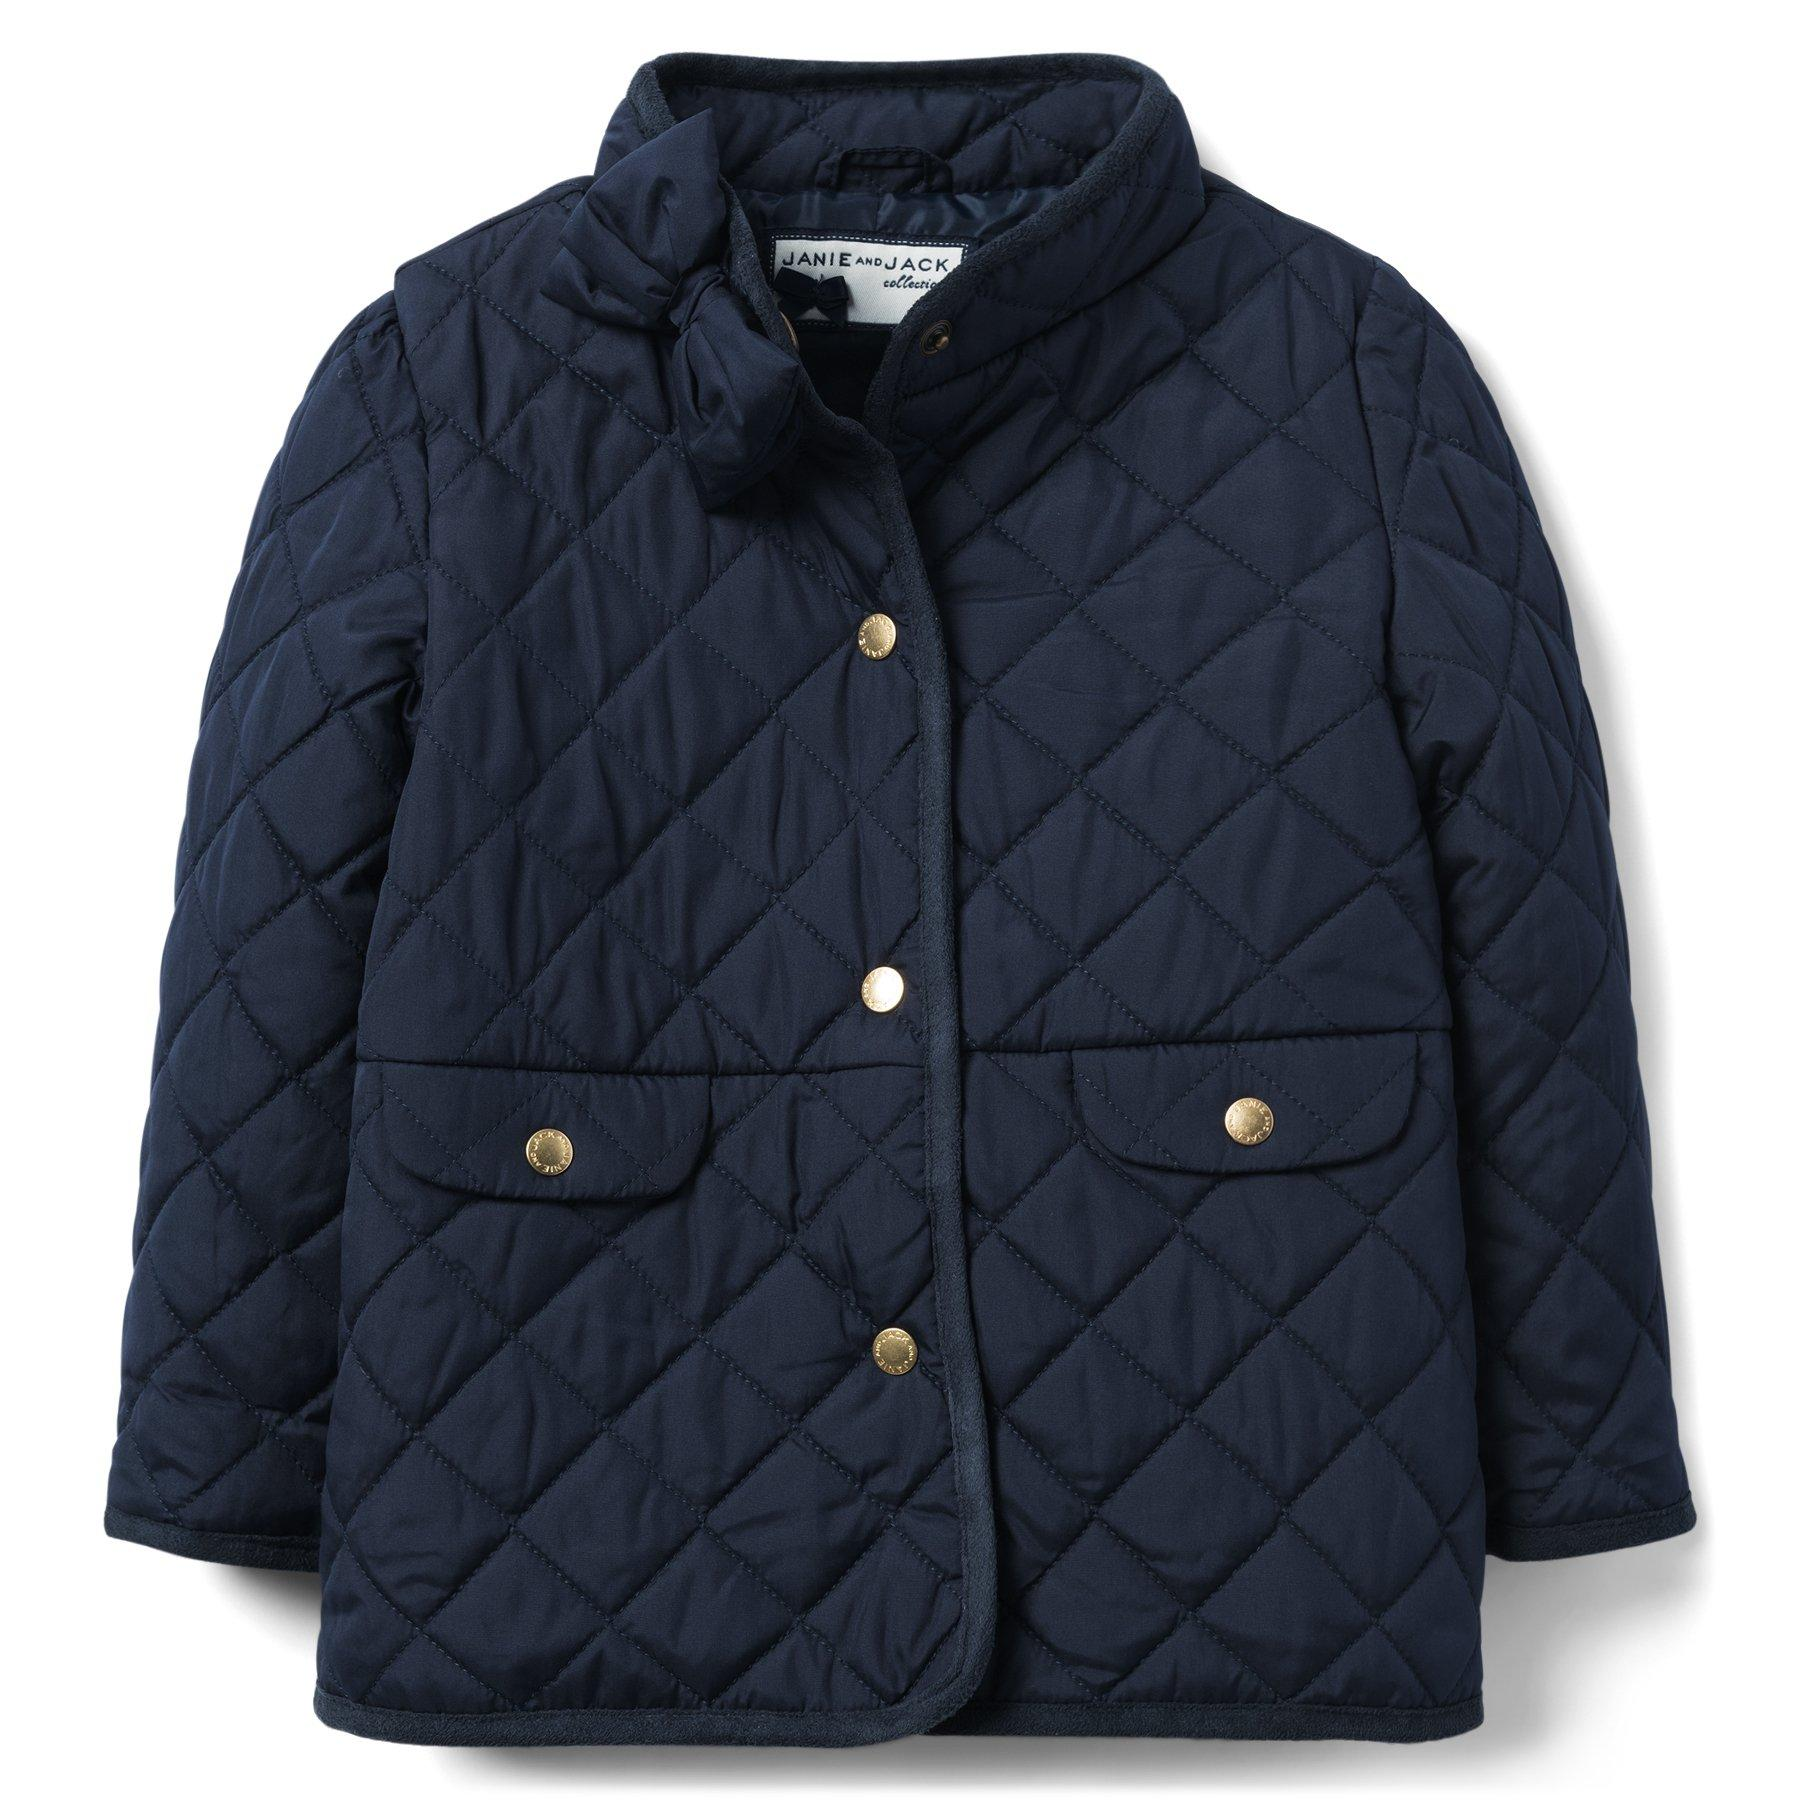 Janie And Jack Girls Quilted Peplum Basic Jacket Coat $79 Choose Color and Size